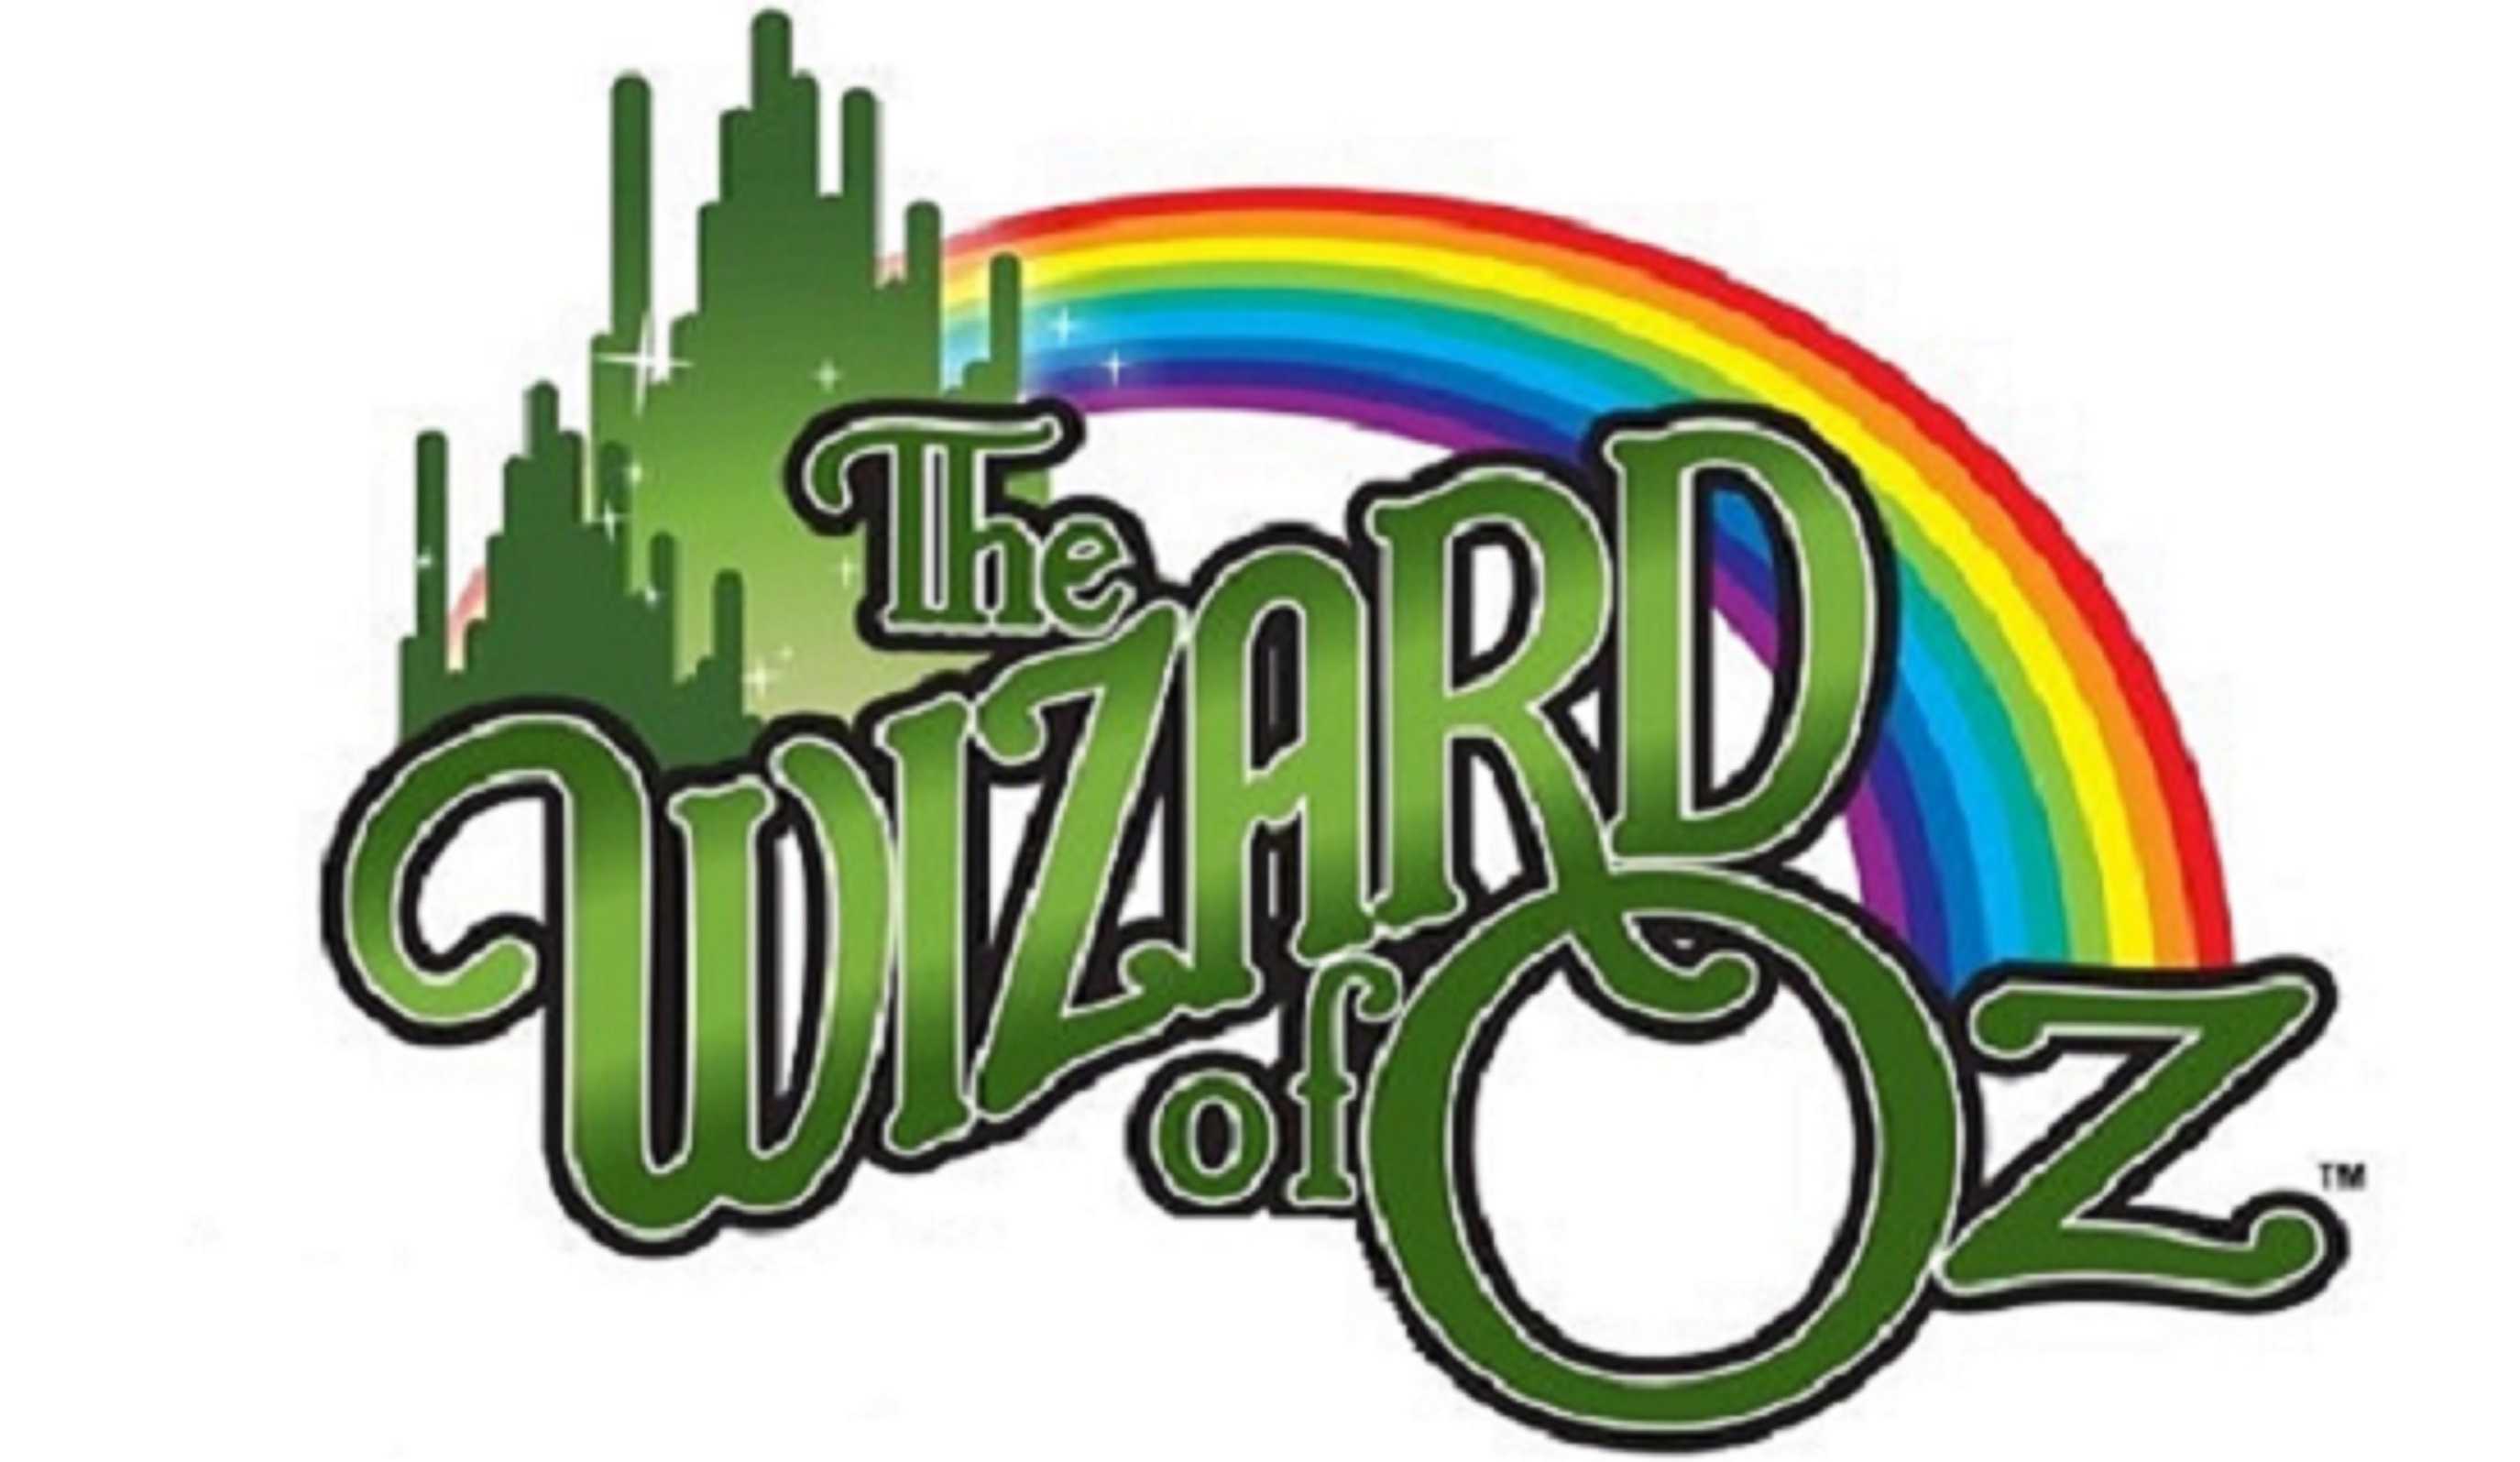 WIZARD OF OZ TICKETS ON SALE NOW!